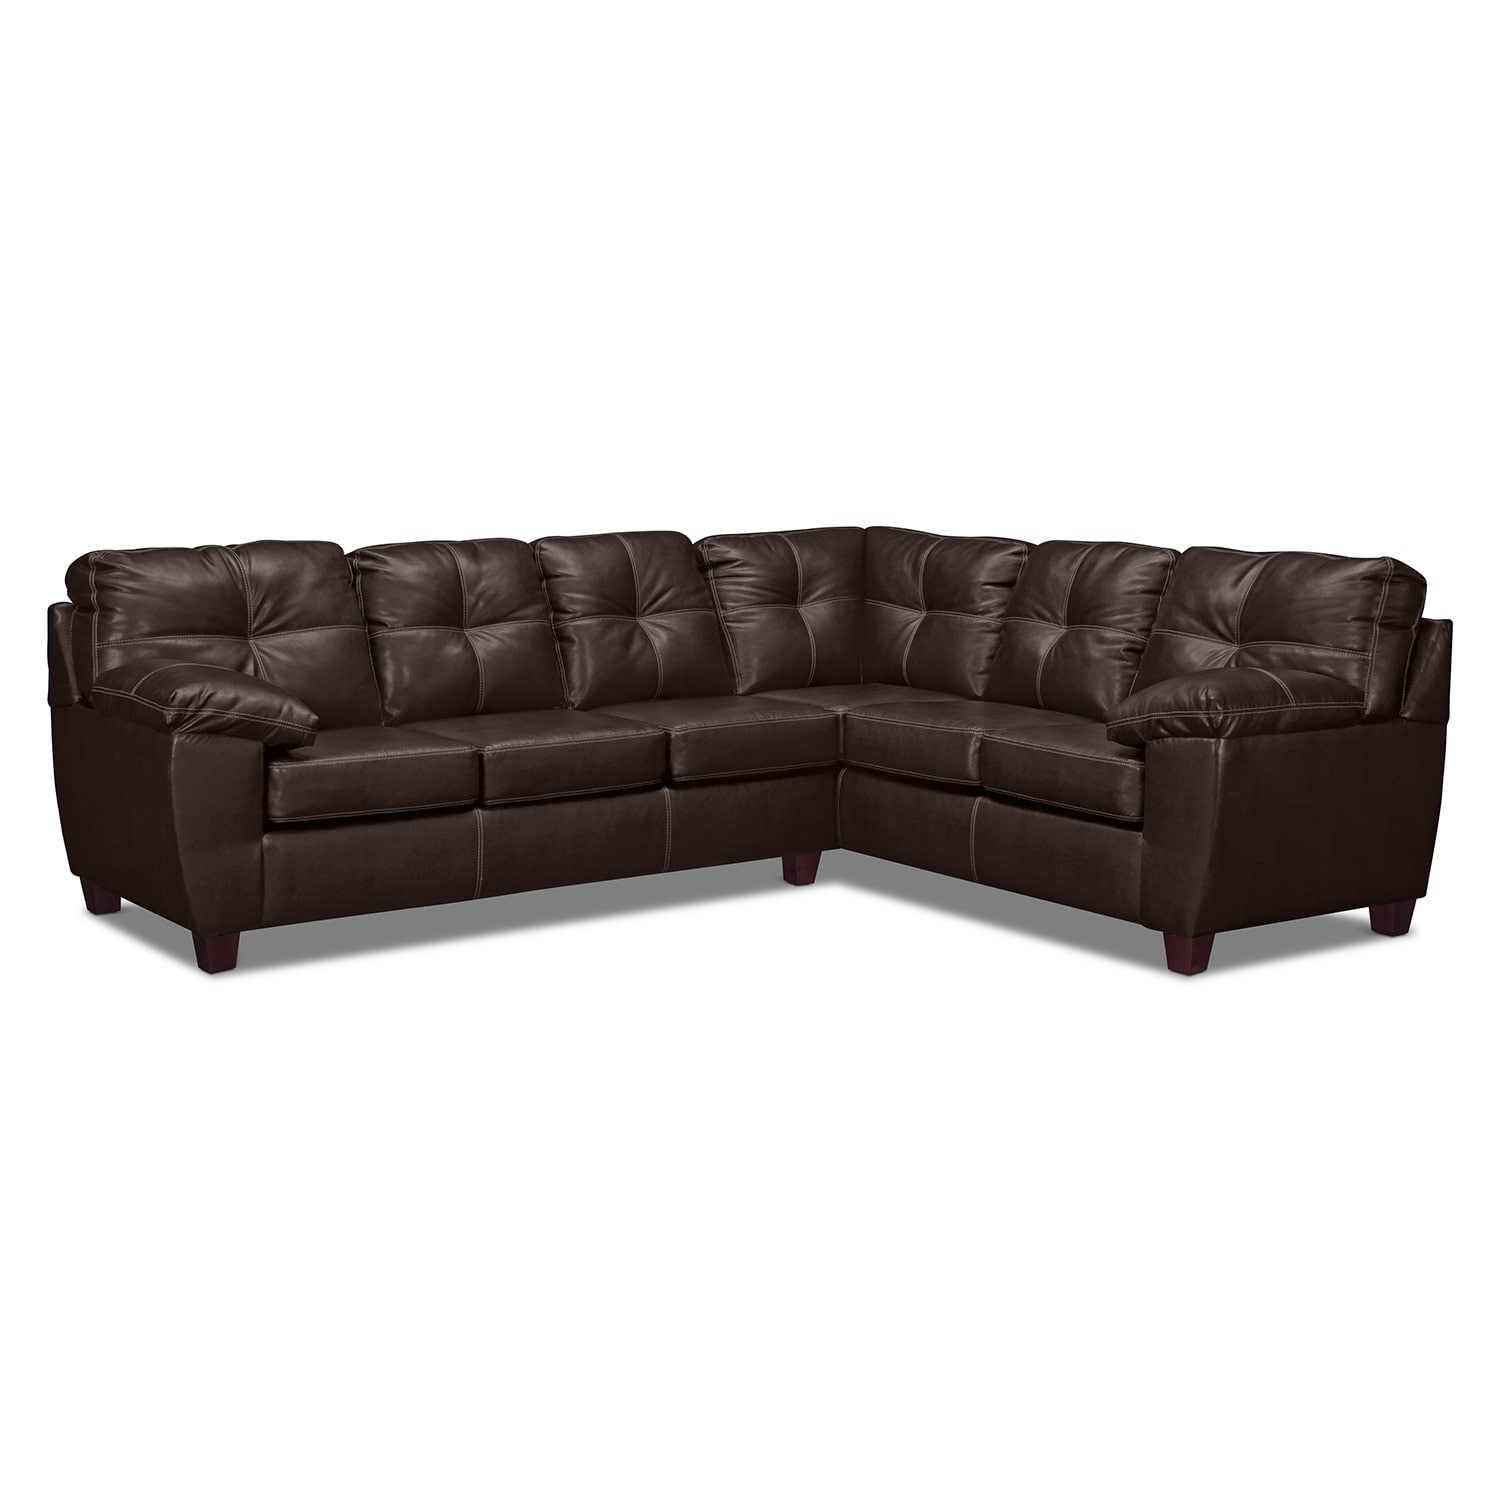 Rialto 2-Piece Sectional with Left-Facing Innerspring Sleeper - Brown